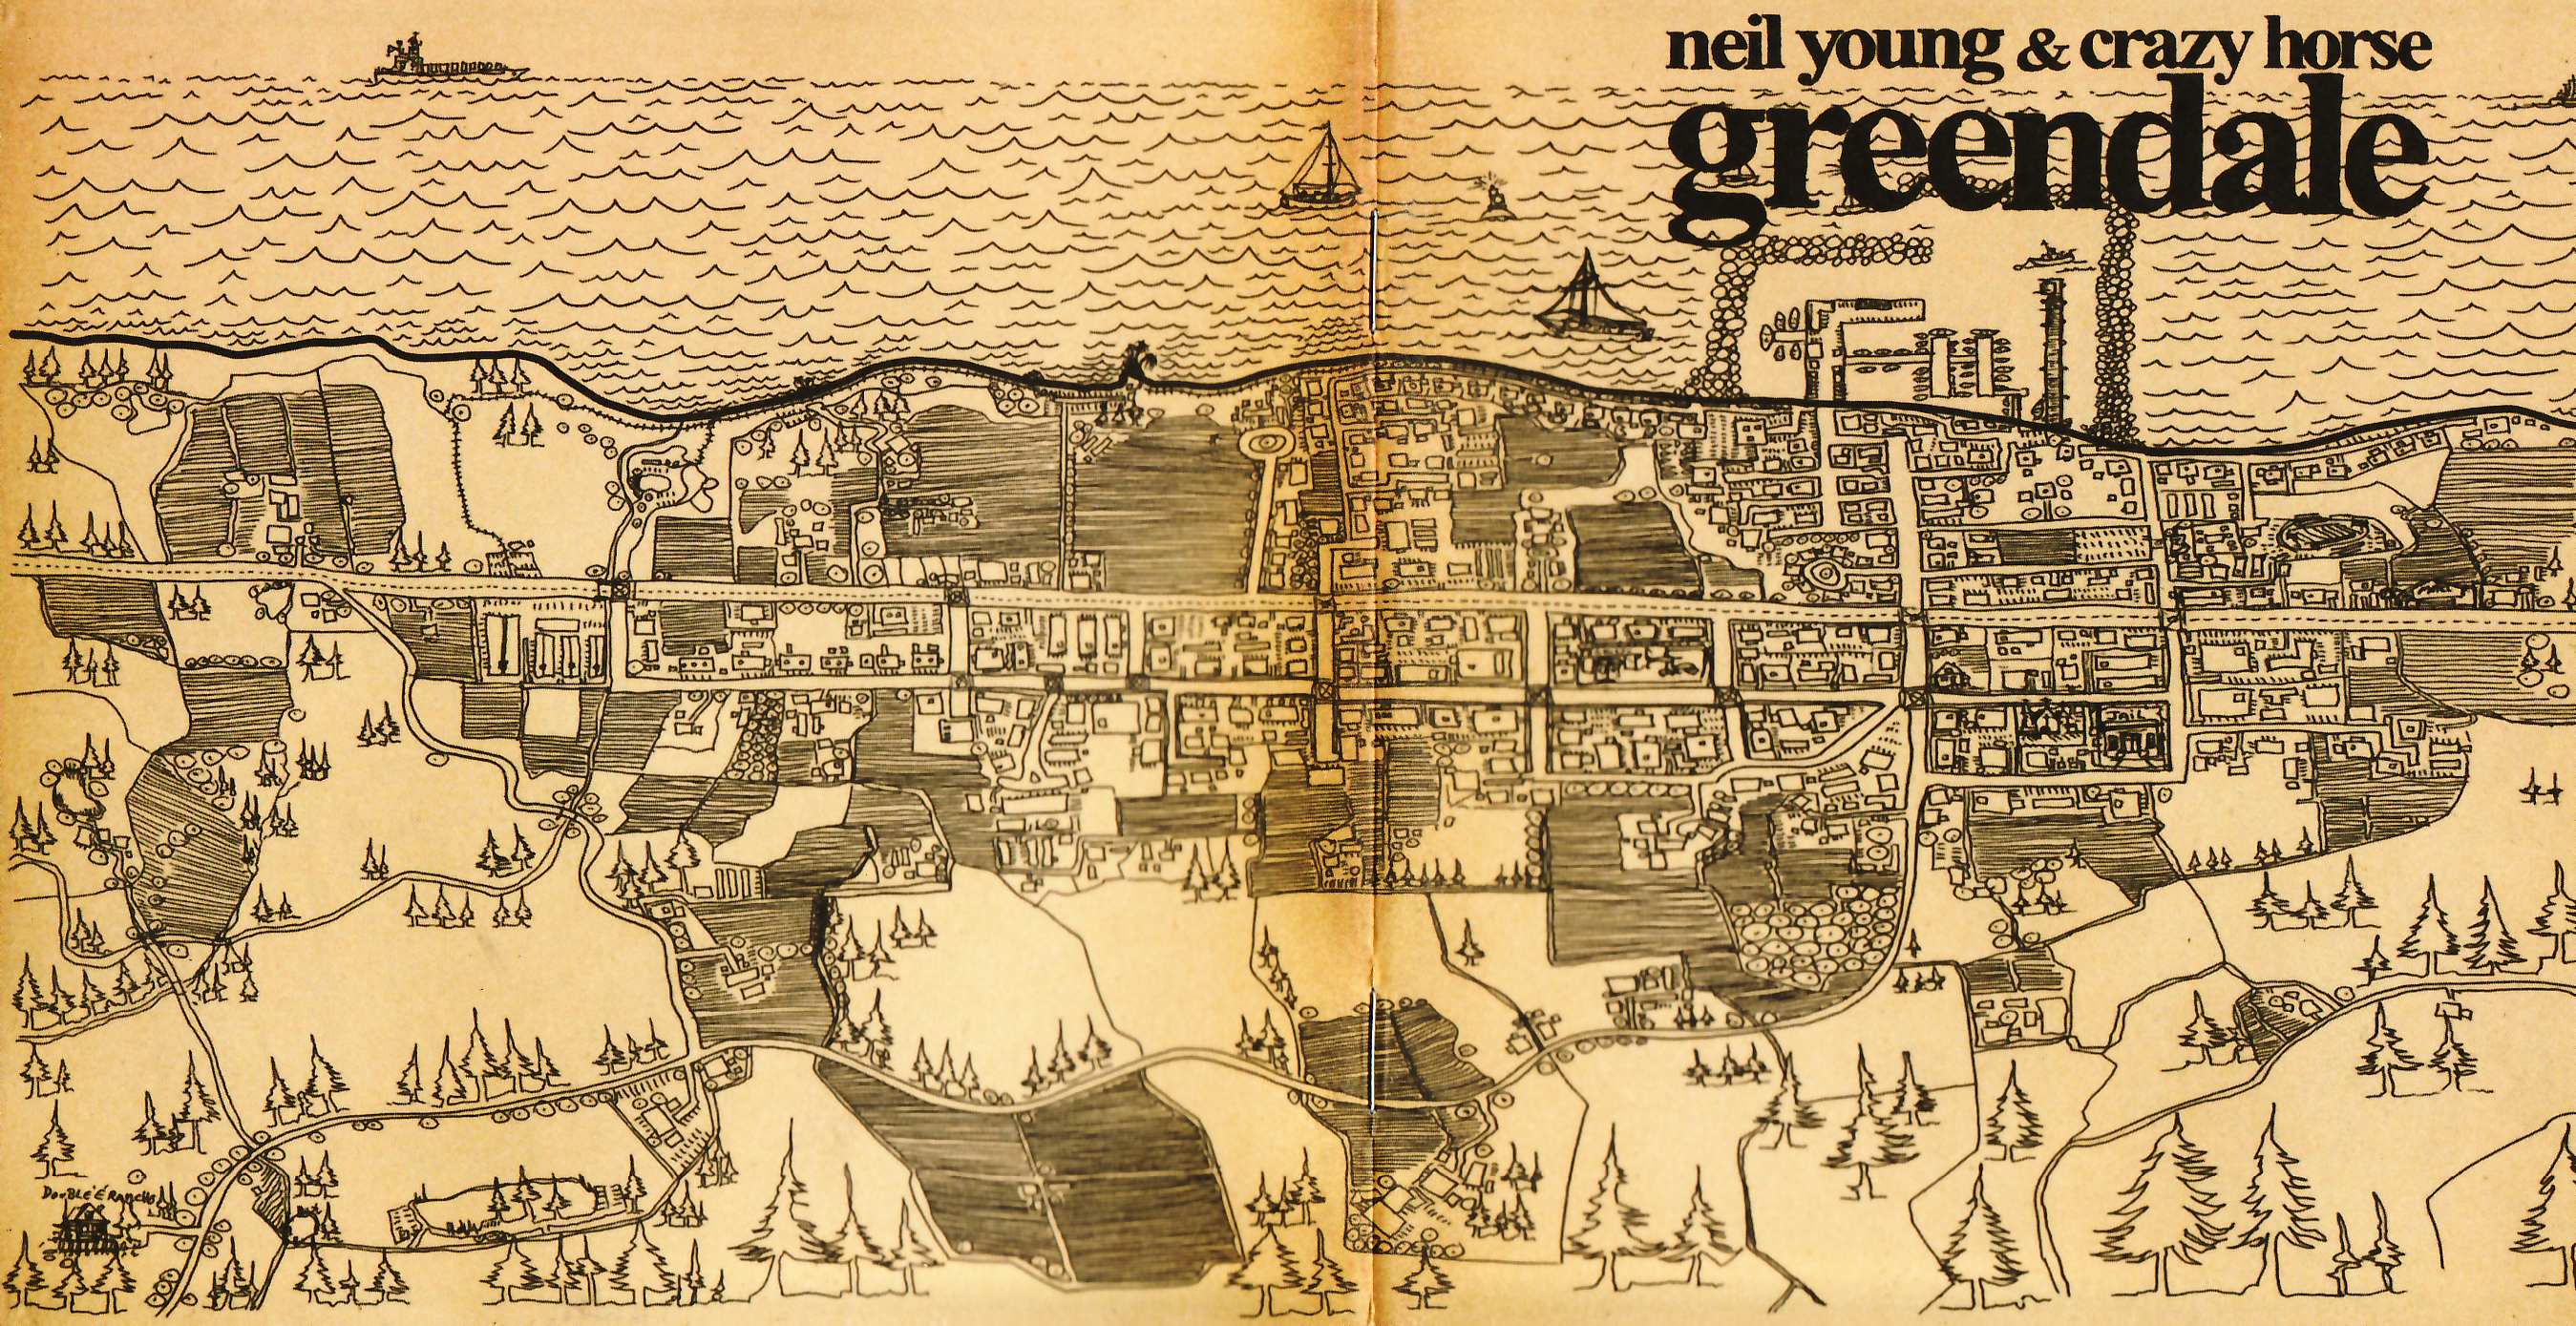 Neil Young & Crazy Horse – Greendale – GIZMO